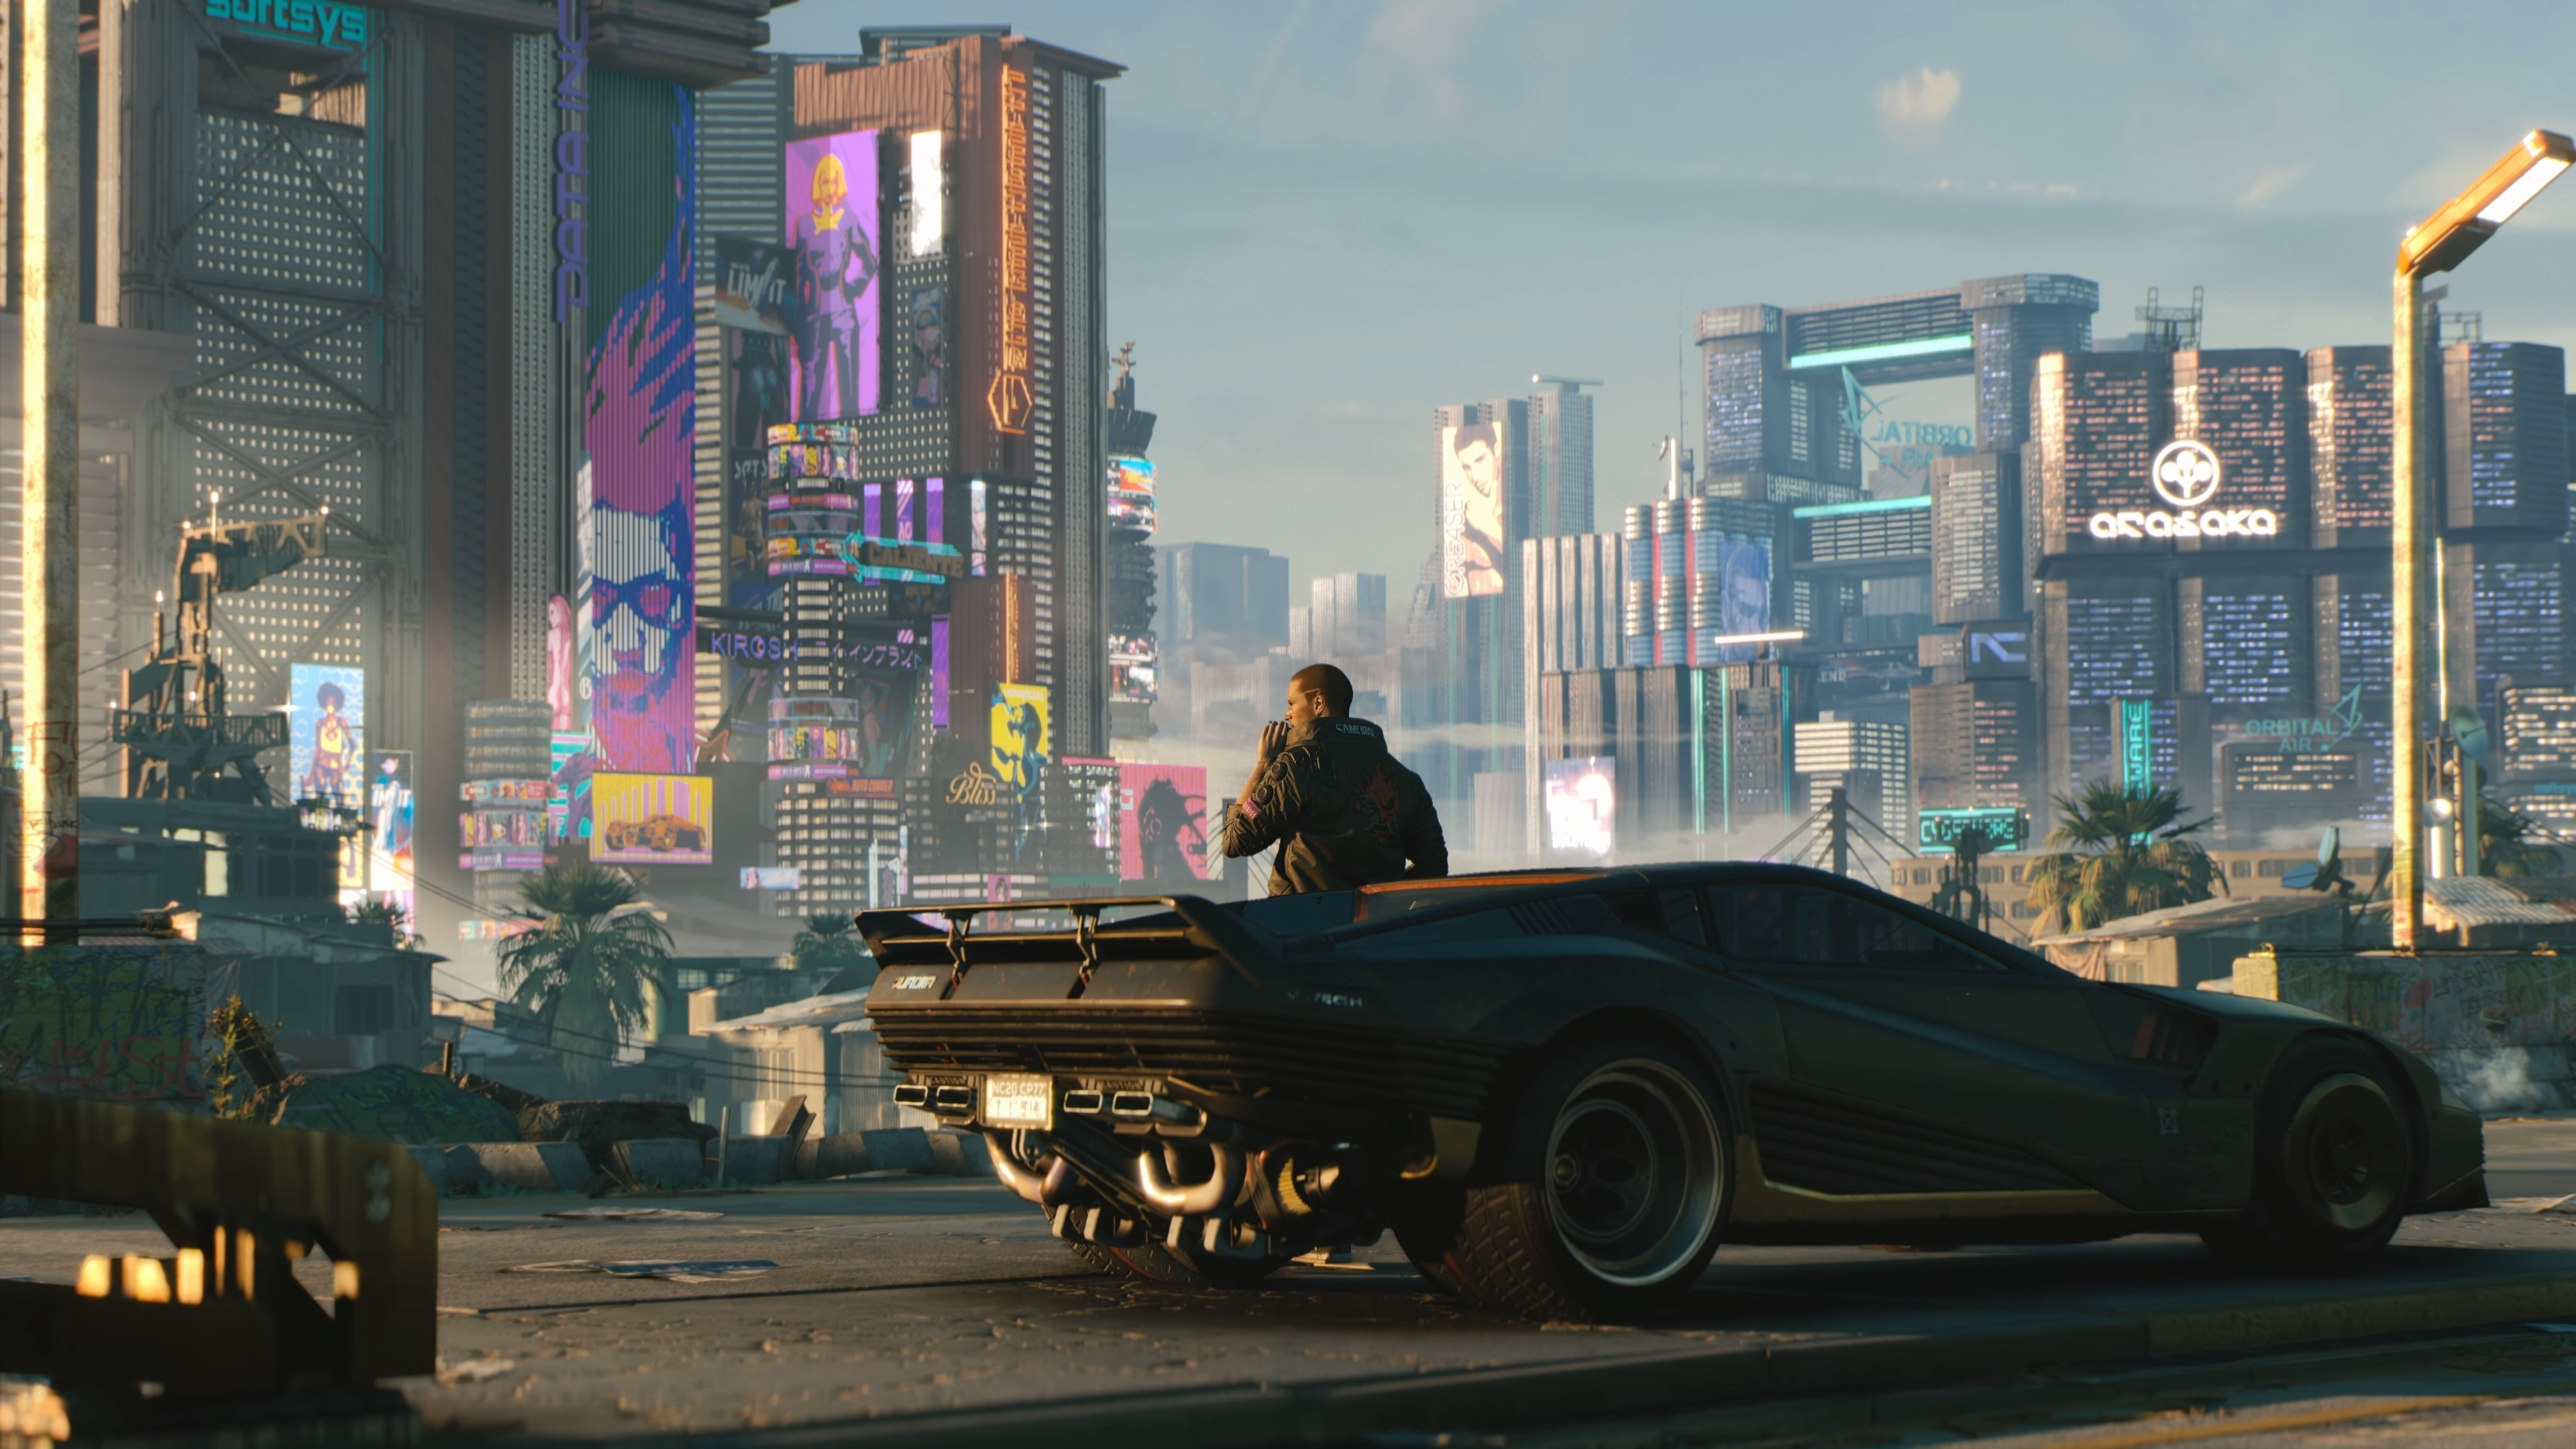 Ultra Hd Car Wallpapers For Mobile Download 3840x2400 Wallpaper Cyberpunk 2077 Man With